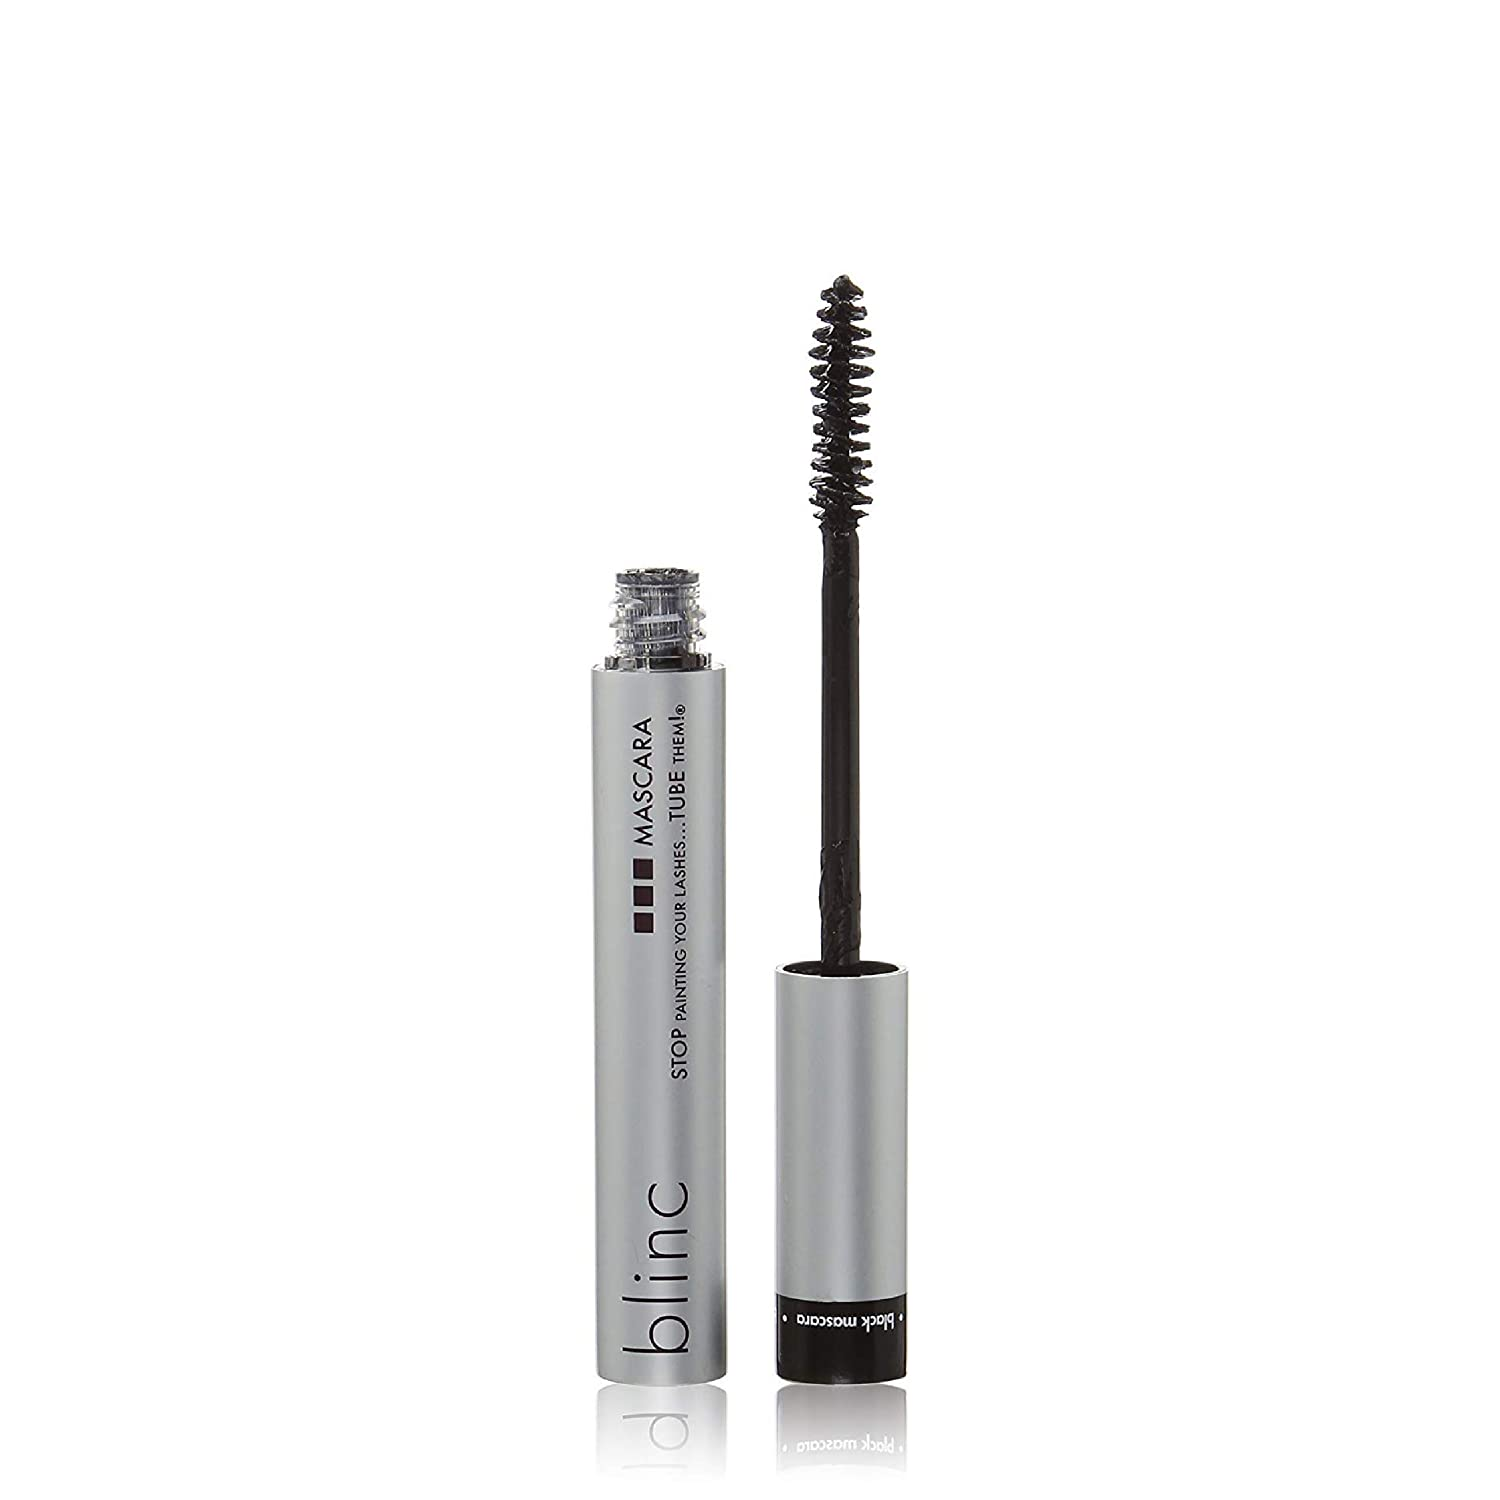 Blinc Brown Mascara